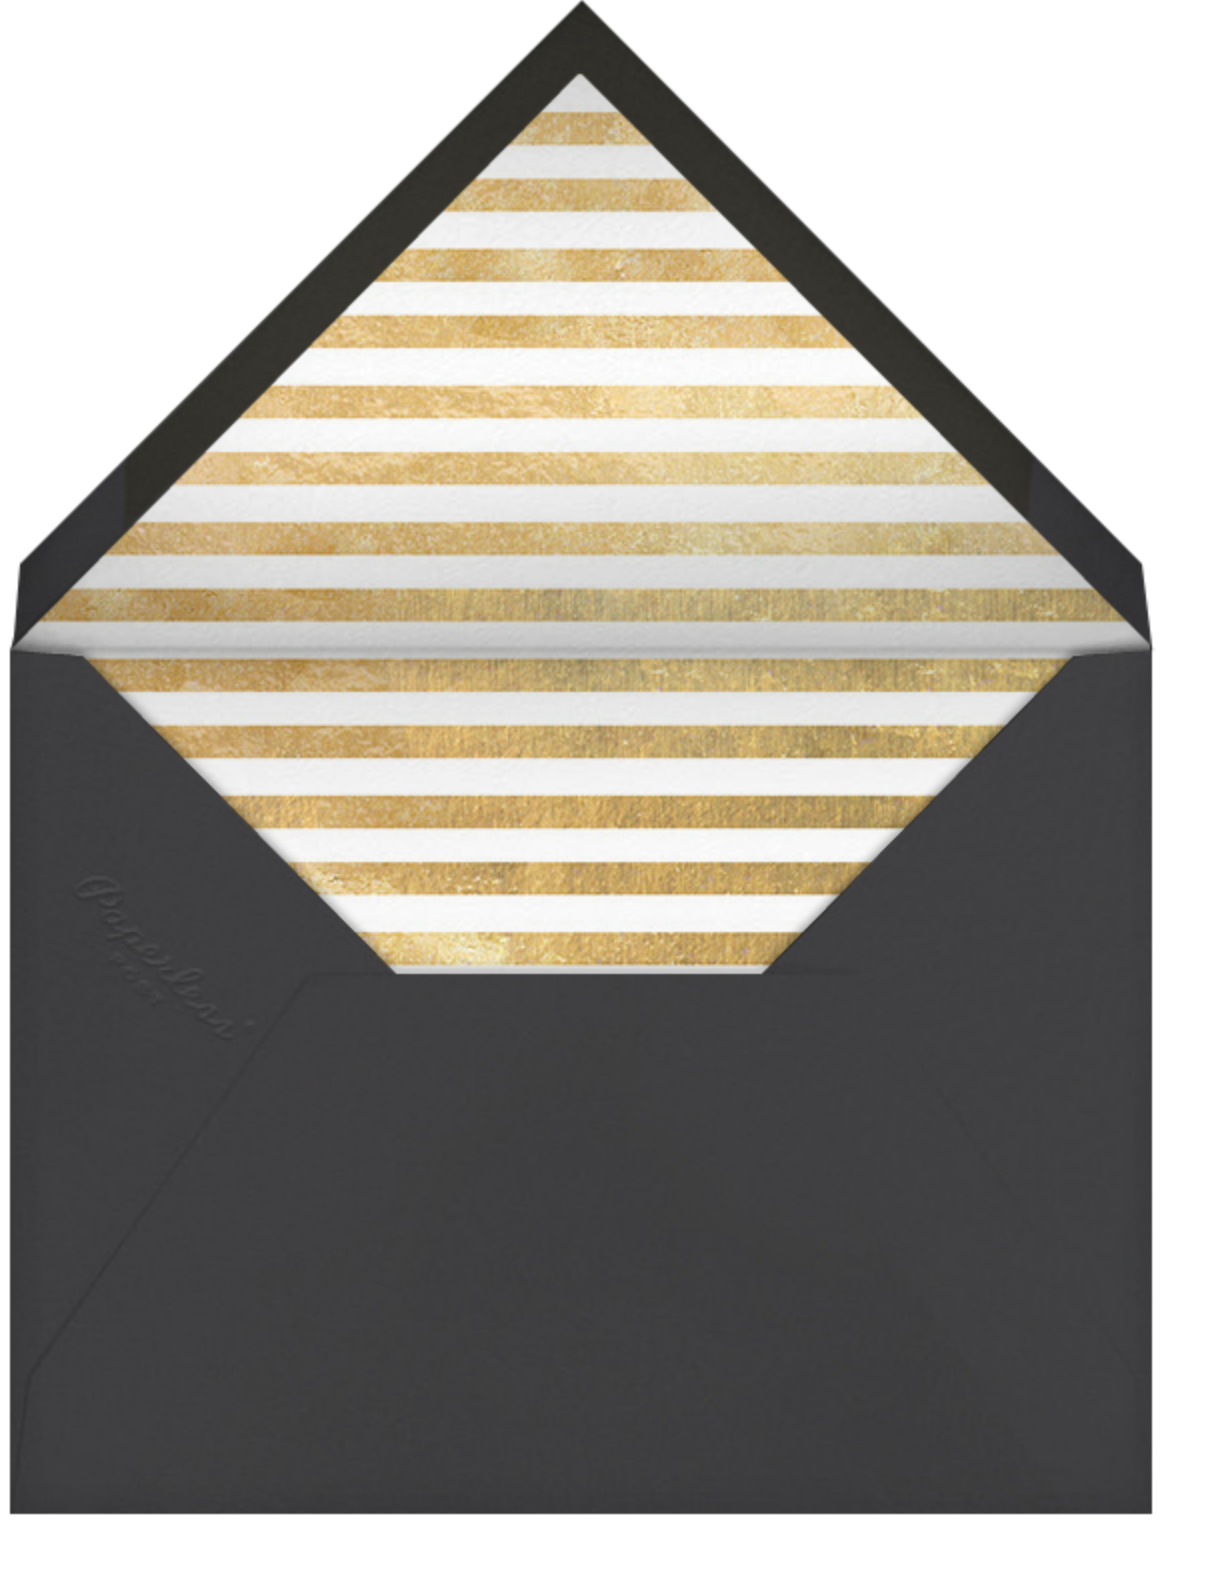 City Lights II (Save the Date) - Slate/Gold  - kate spade new york - Save the date - envelope back